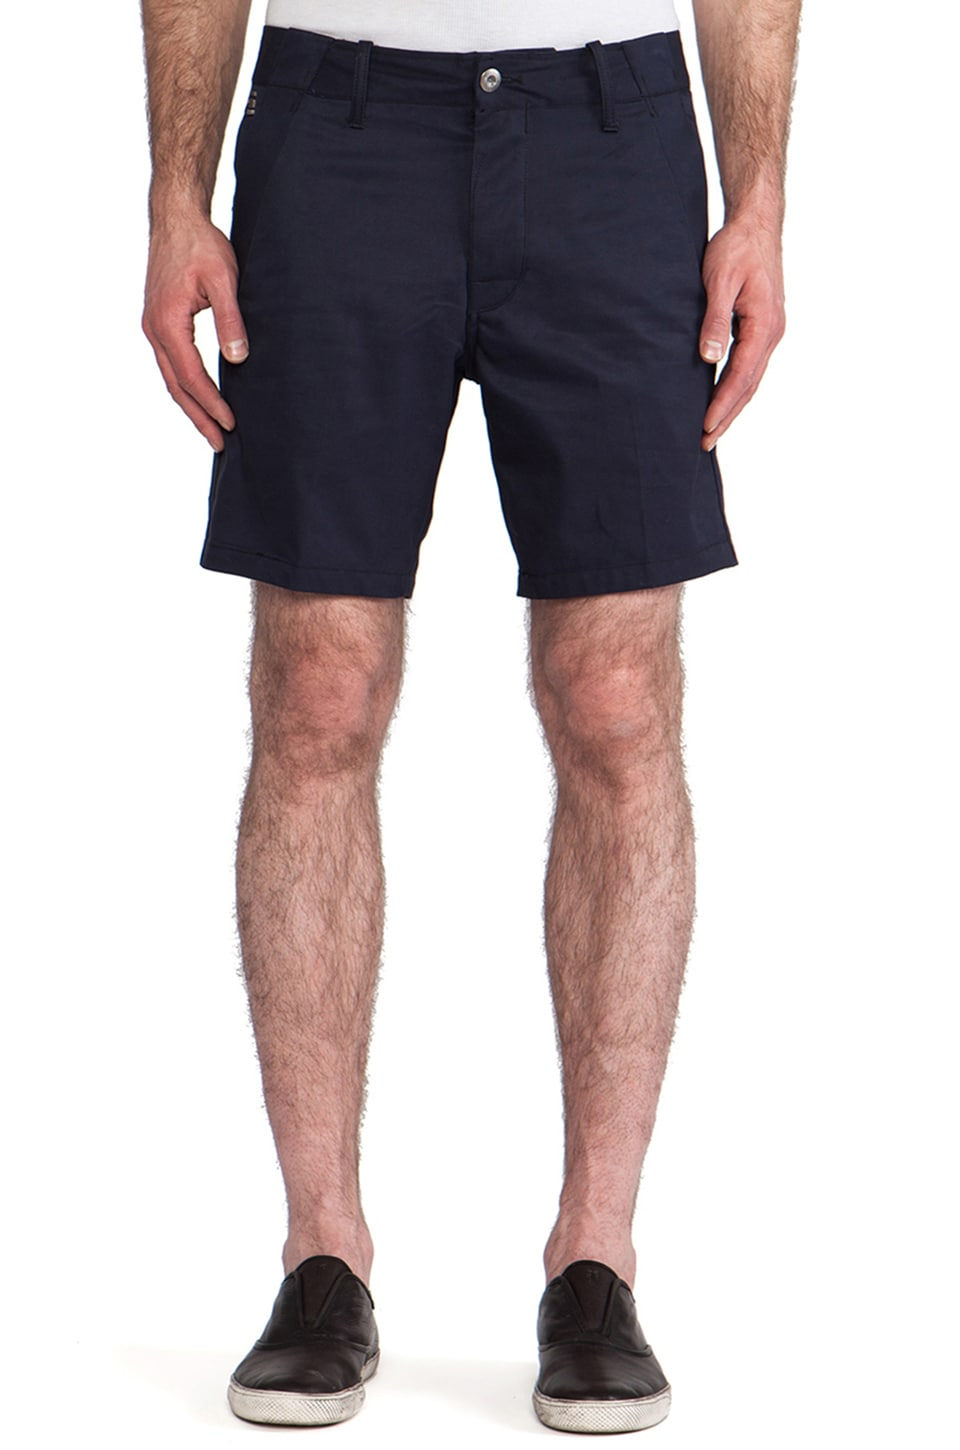 G-Star Correct Bronson Short in Tonel